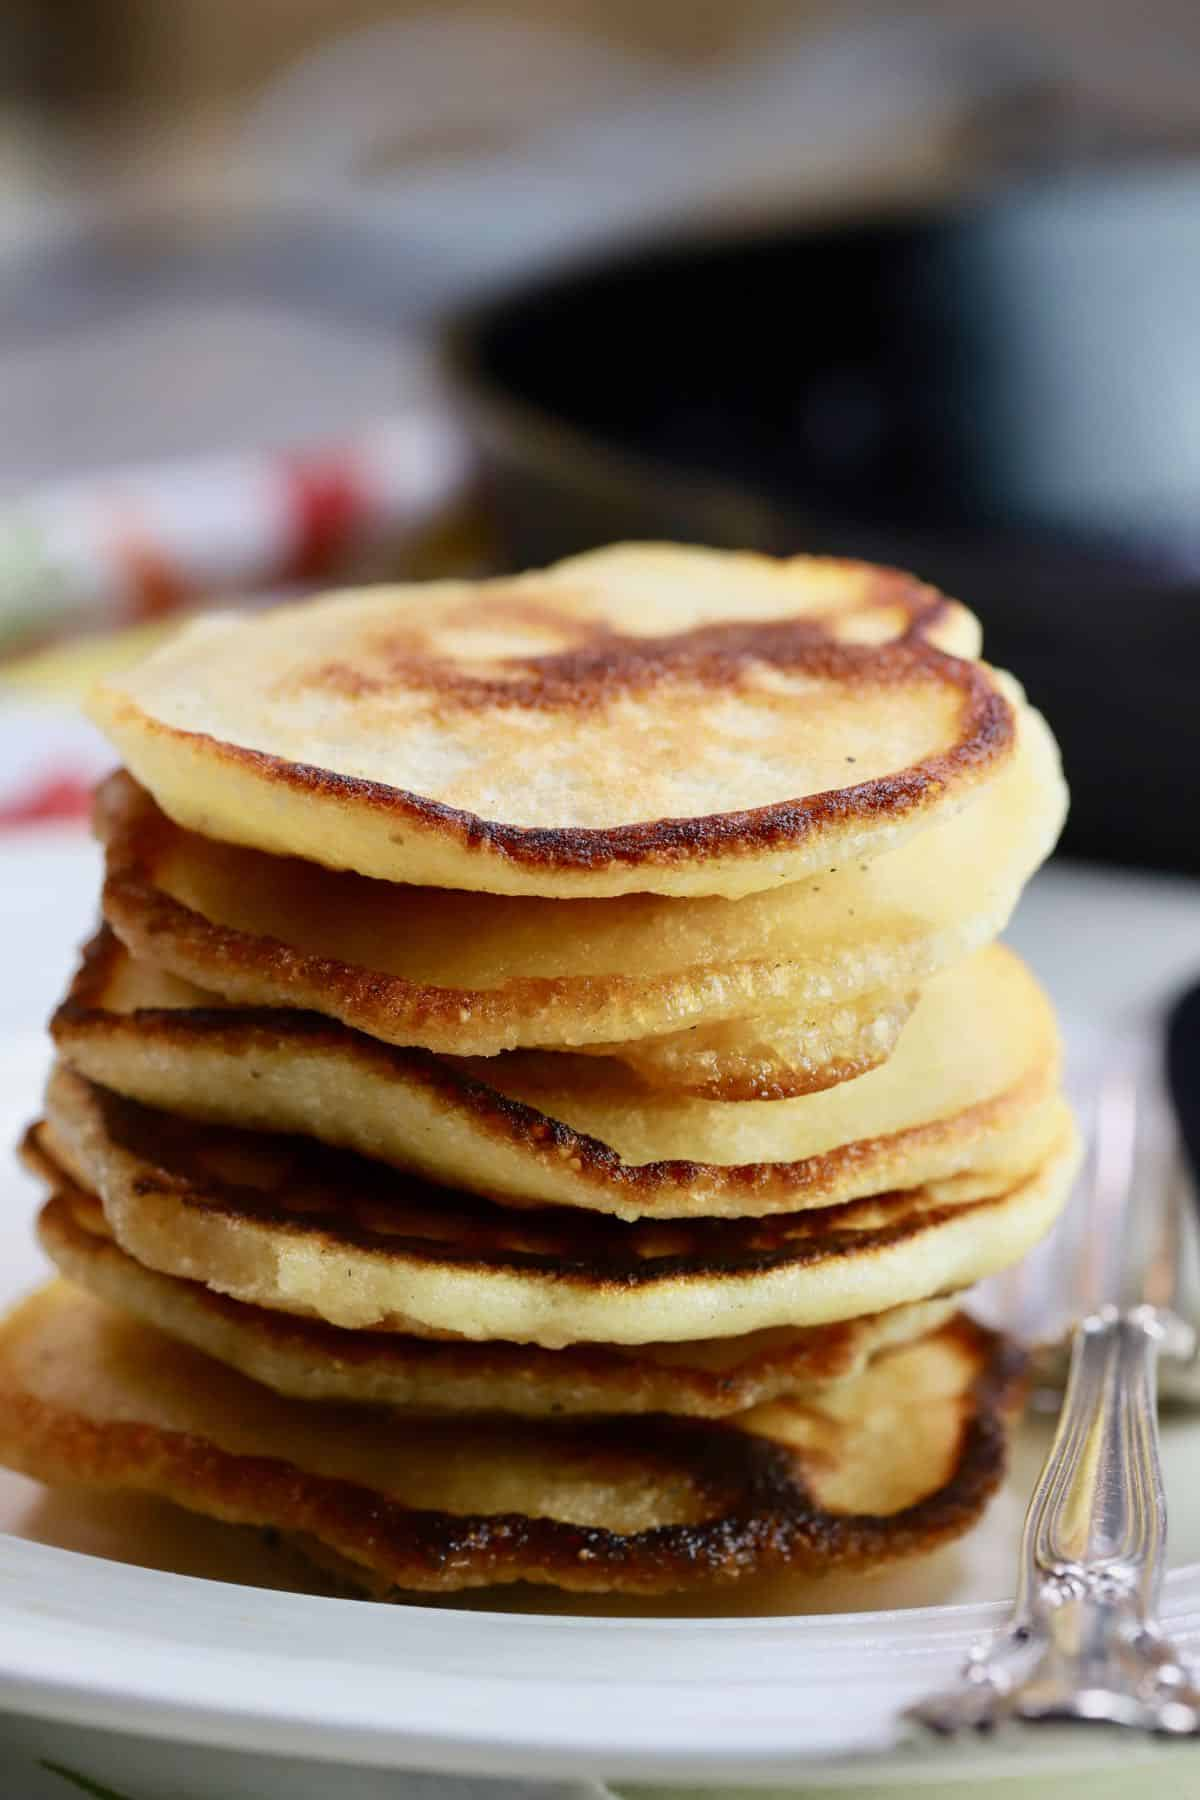 A stack of hoecakes on a white plate with a fork and knife.